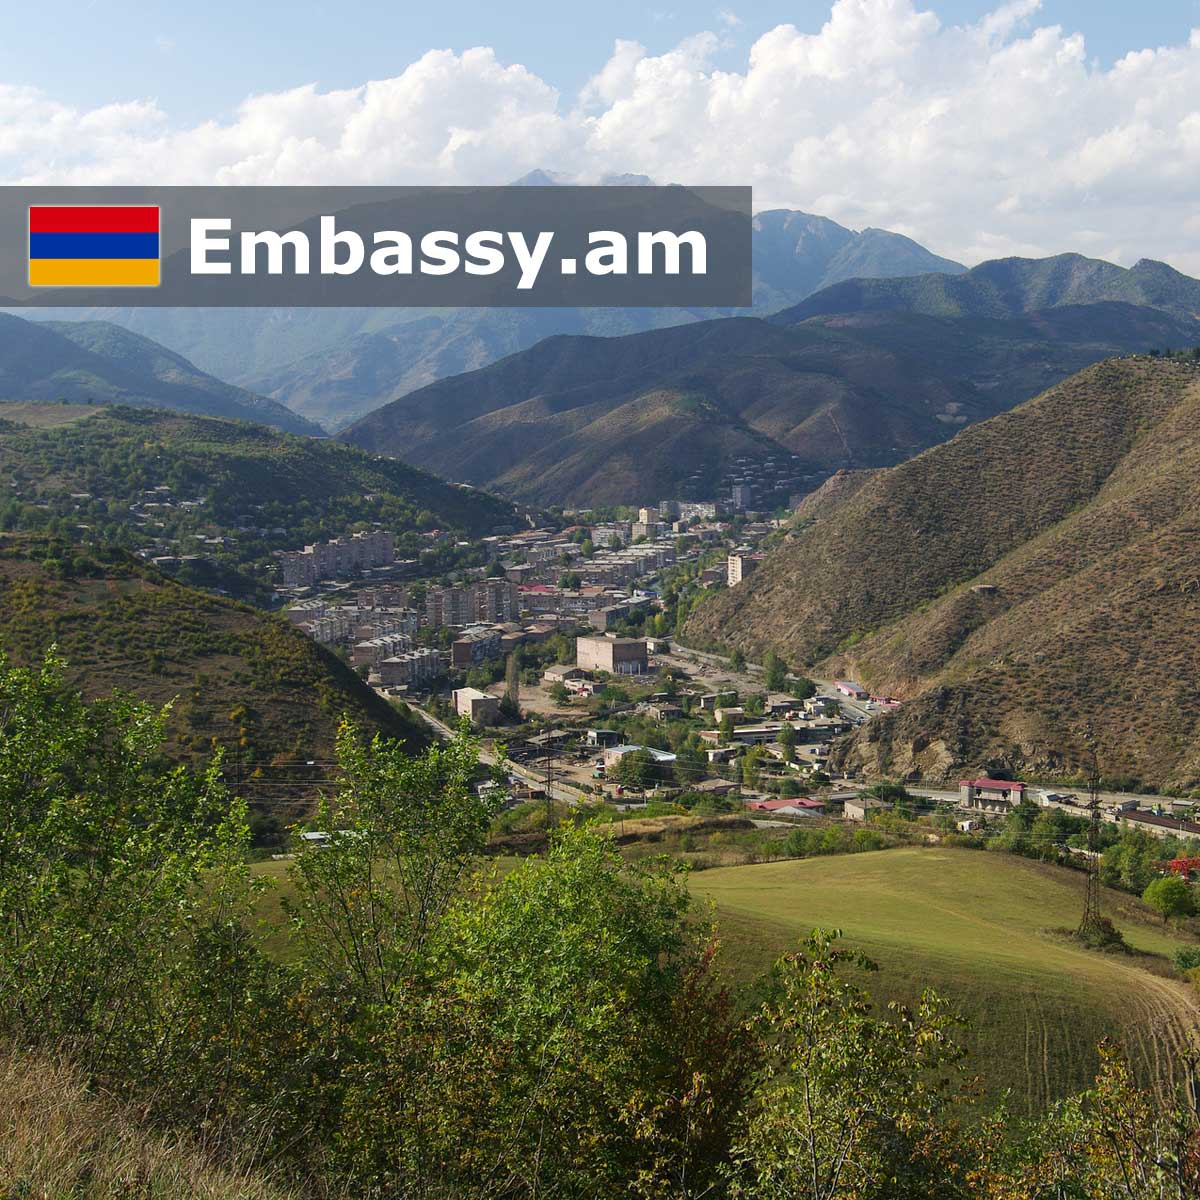 Kapan - Hotels in Armenia - Embassy.am